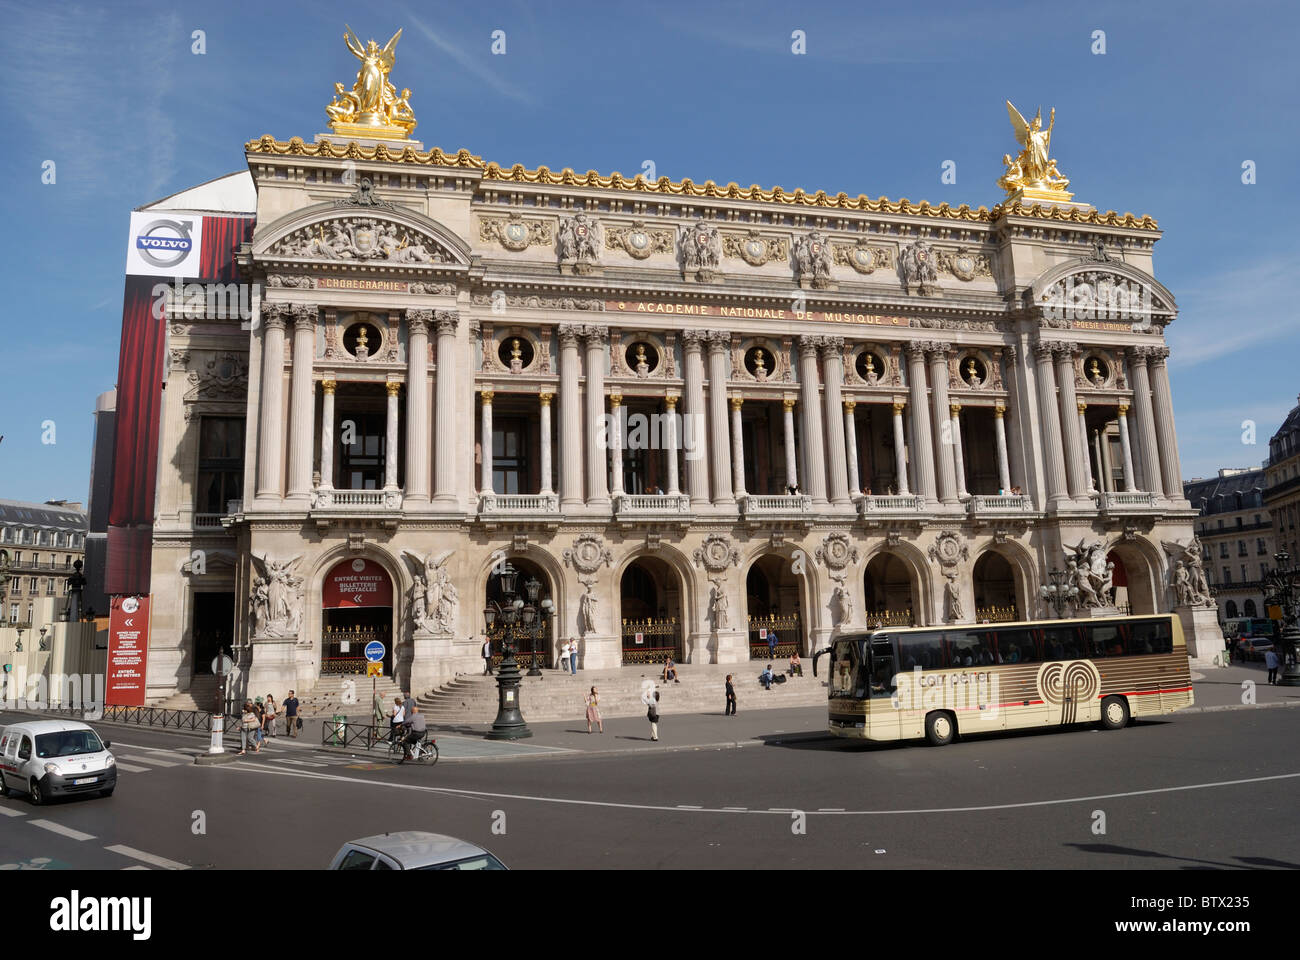 Place De L'Opera, Palais Garnier located on Avenue D'Opera in Paris, is located in a square known as the - Stock Image